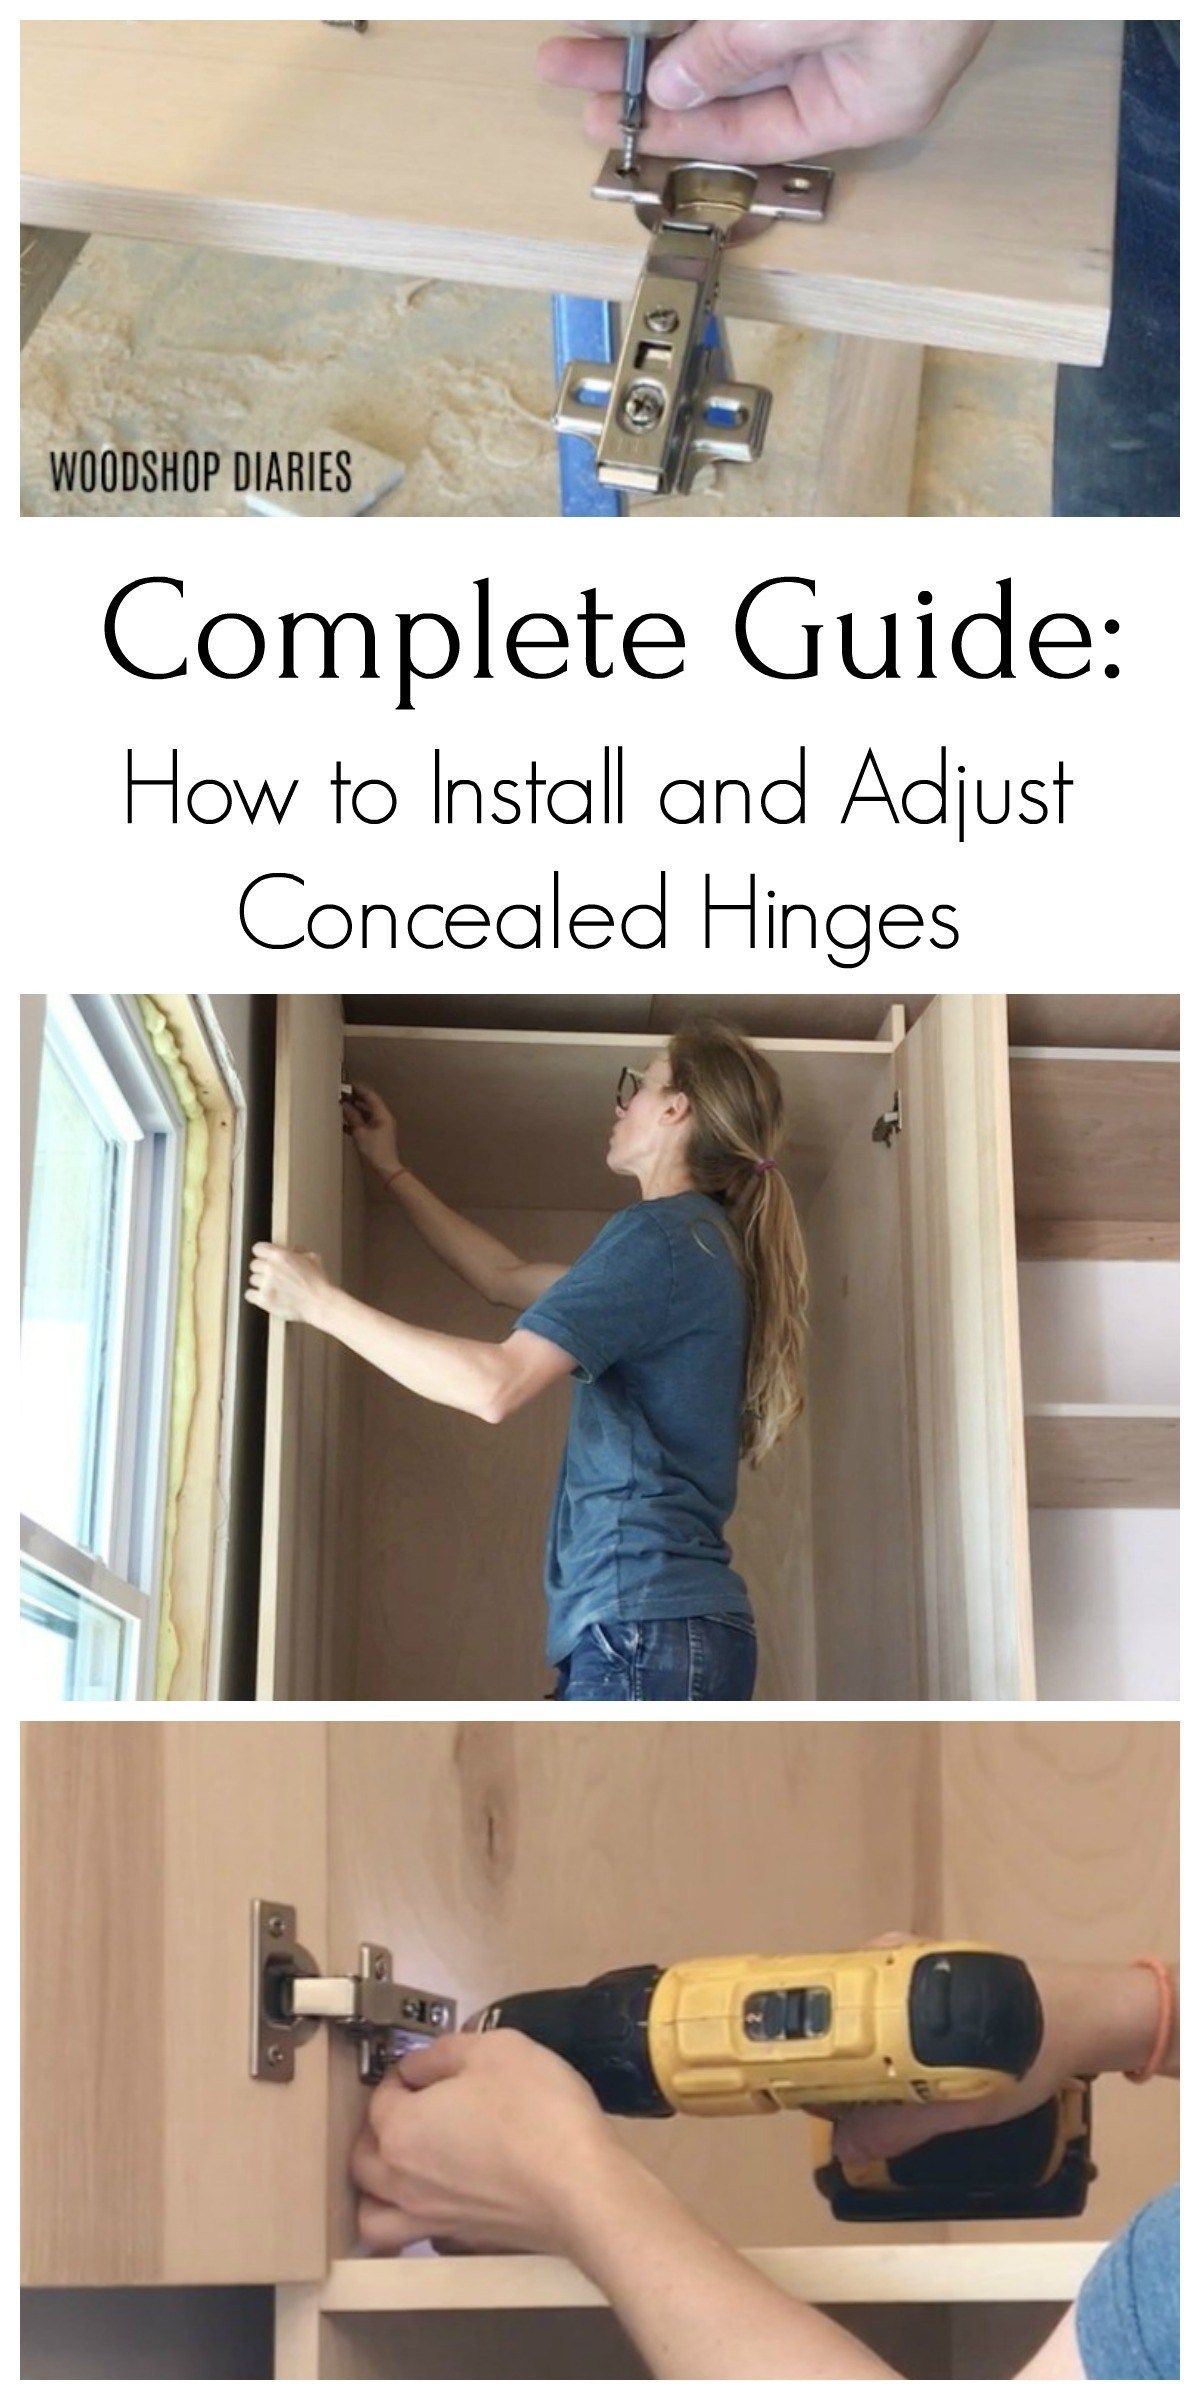 How To Install Concealed Hinges The Complete Guide In 2020 Diy Cabinet Doors Kitchen Cabinets Hinges Hidden Hinges Cabinets